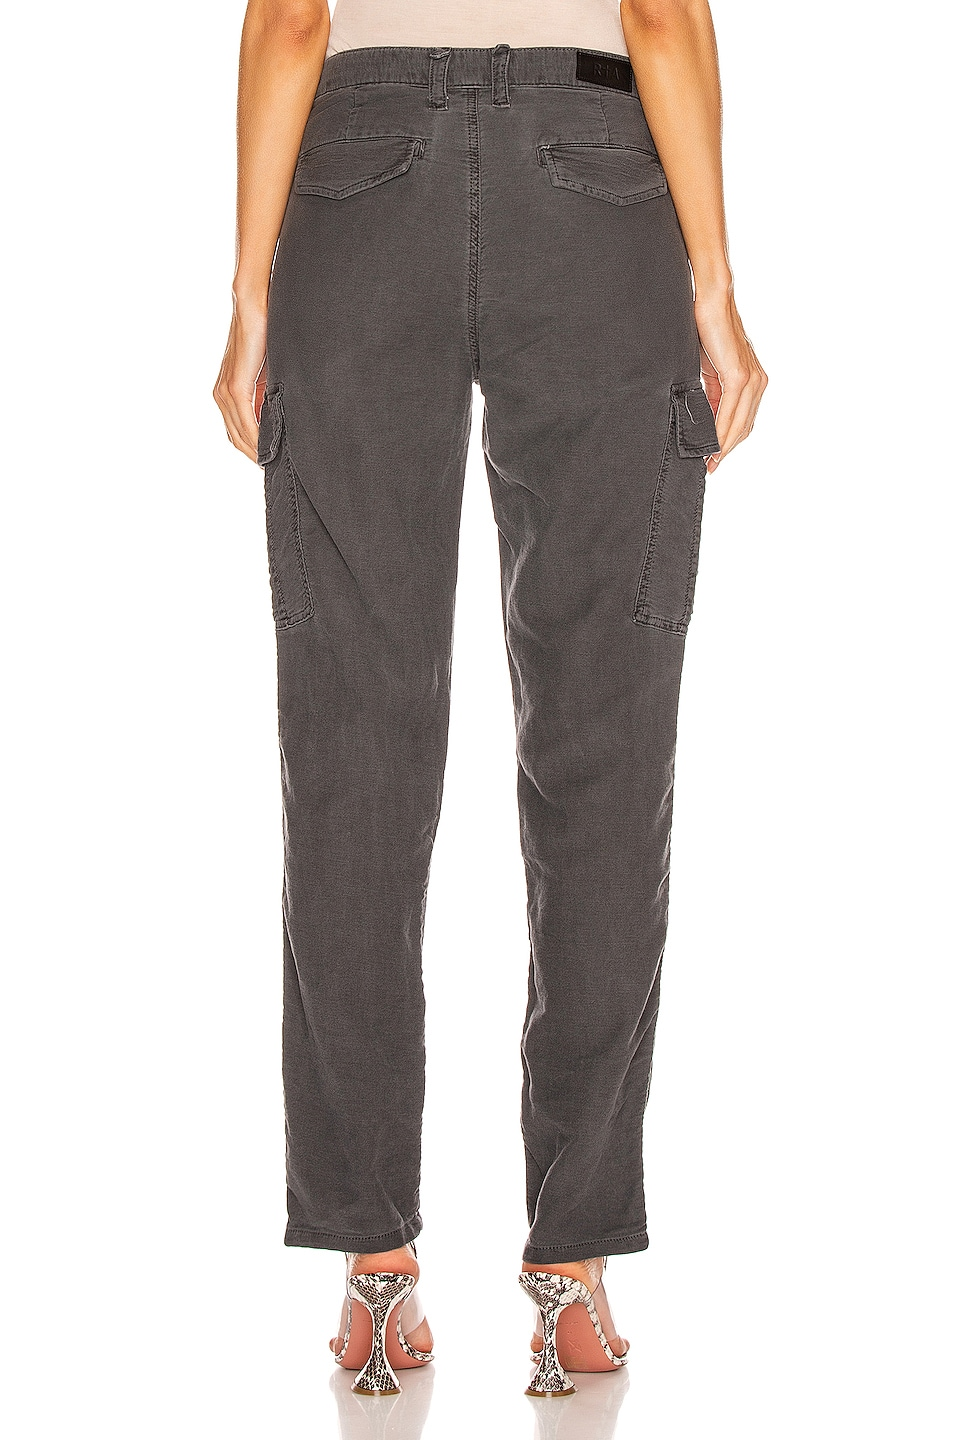 Image 3 of RtA Sallinger Pant in Faded Grey